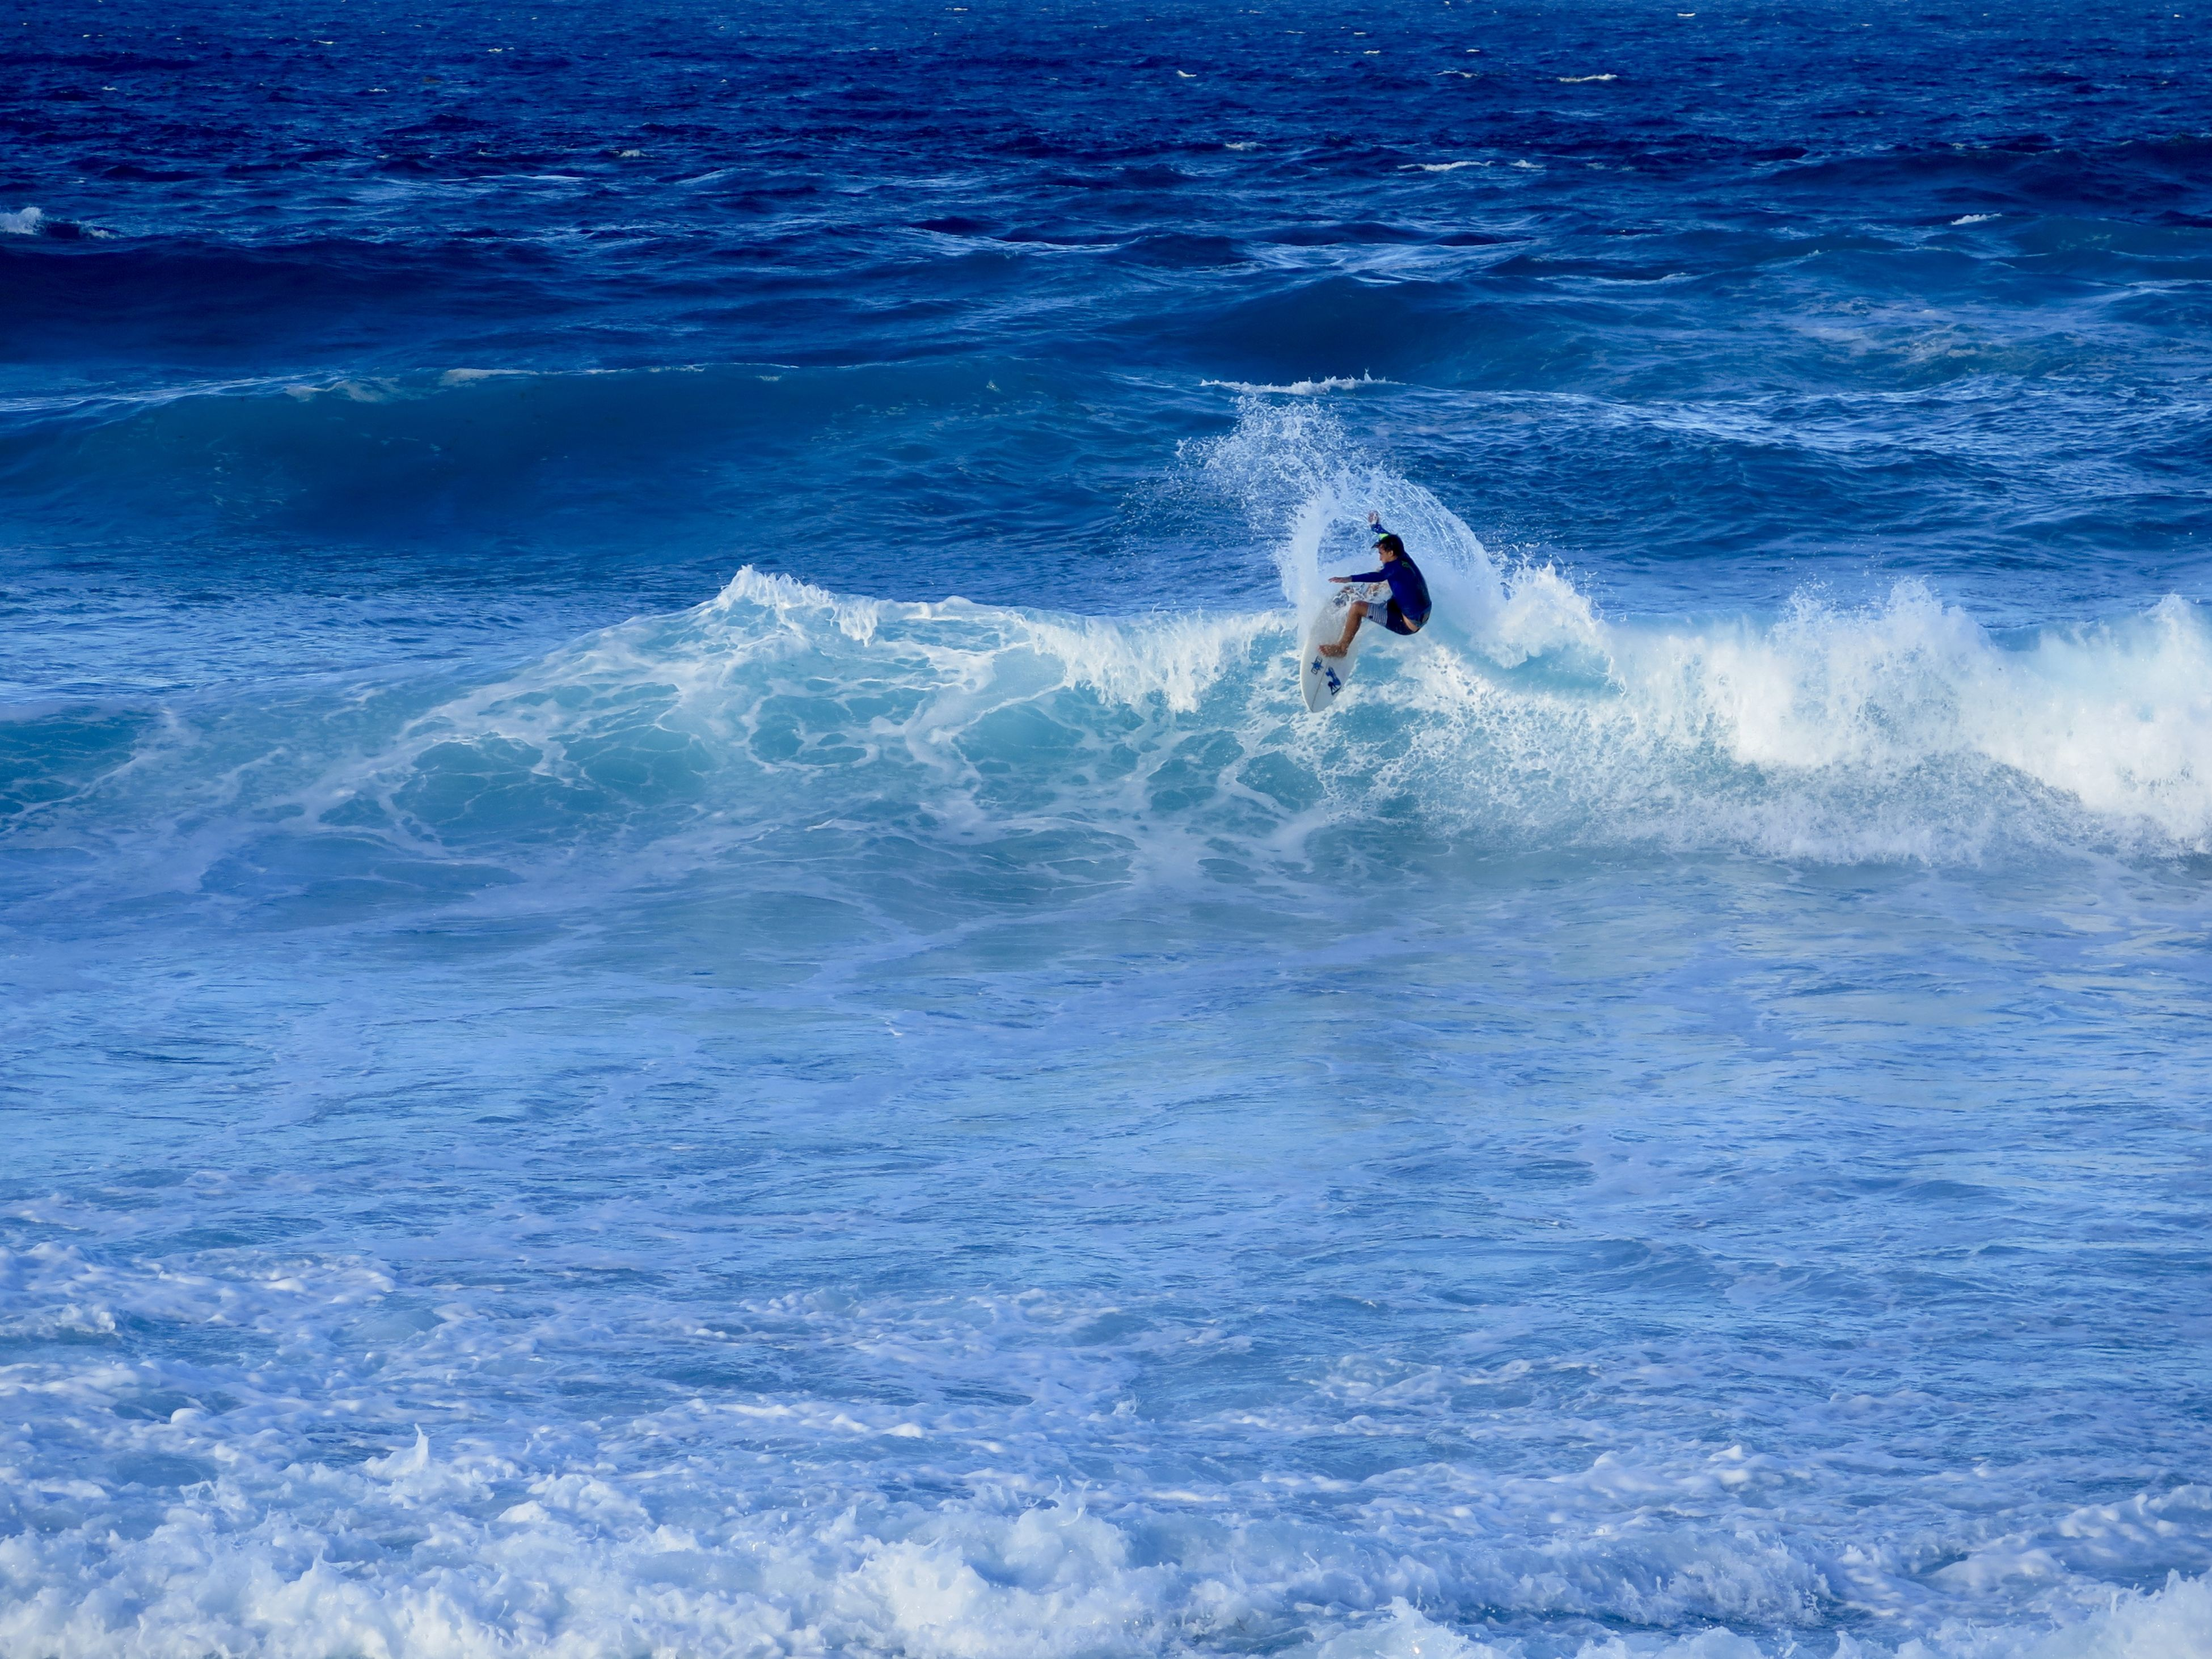 sea, wave, water, nature, sport, one person, lifestyles, aquatic sport, adventure, outdoors, men, motion, day, beauty in nature, speed, real people, extreme sports, adult, people, one man only, adults only, only men